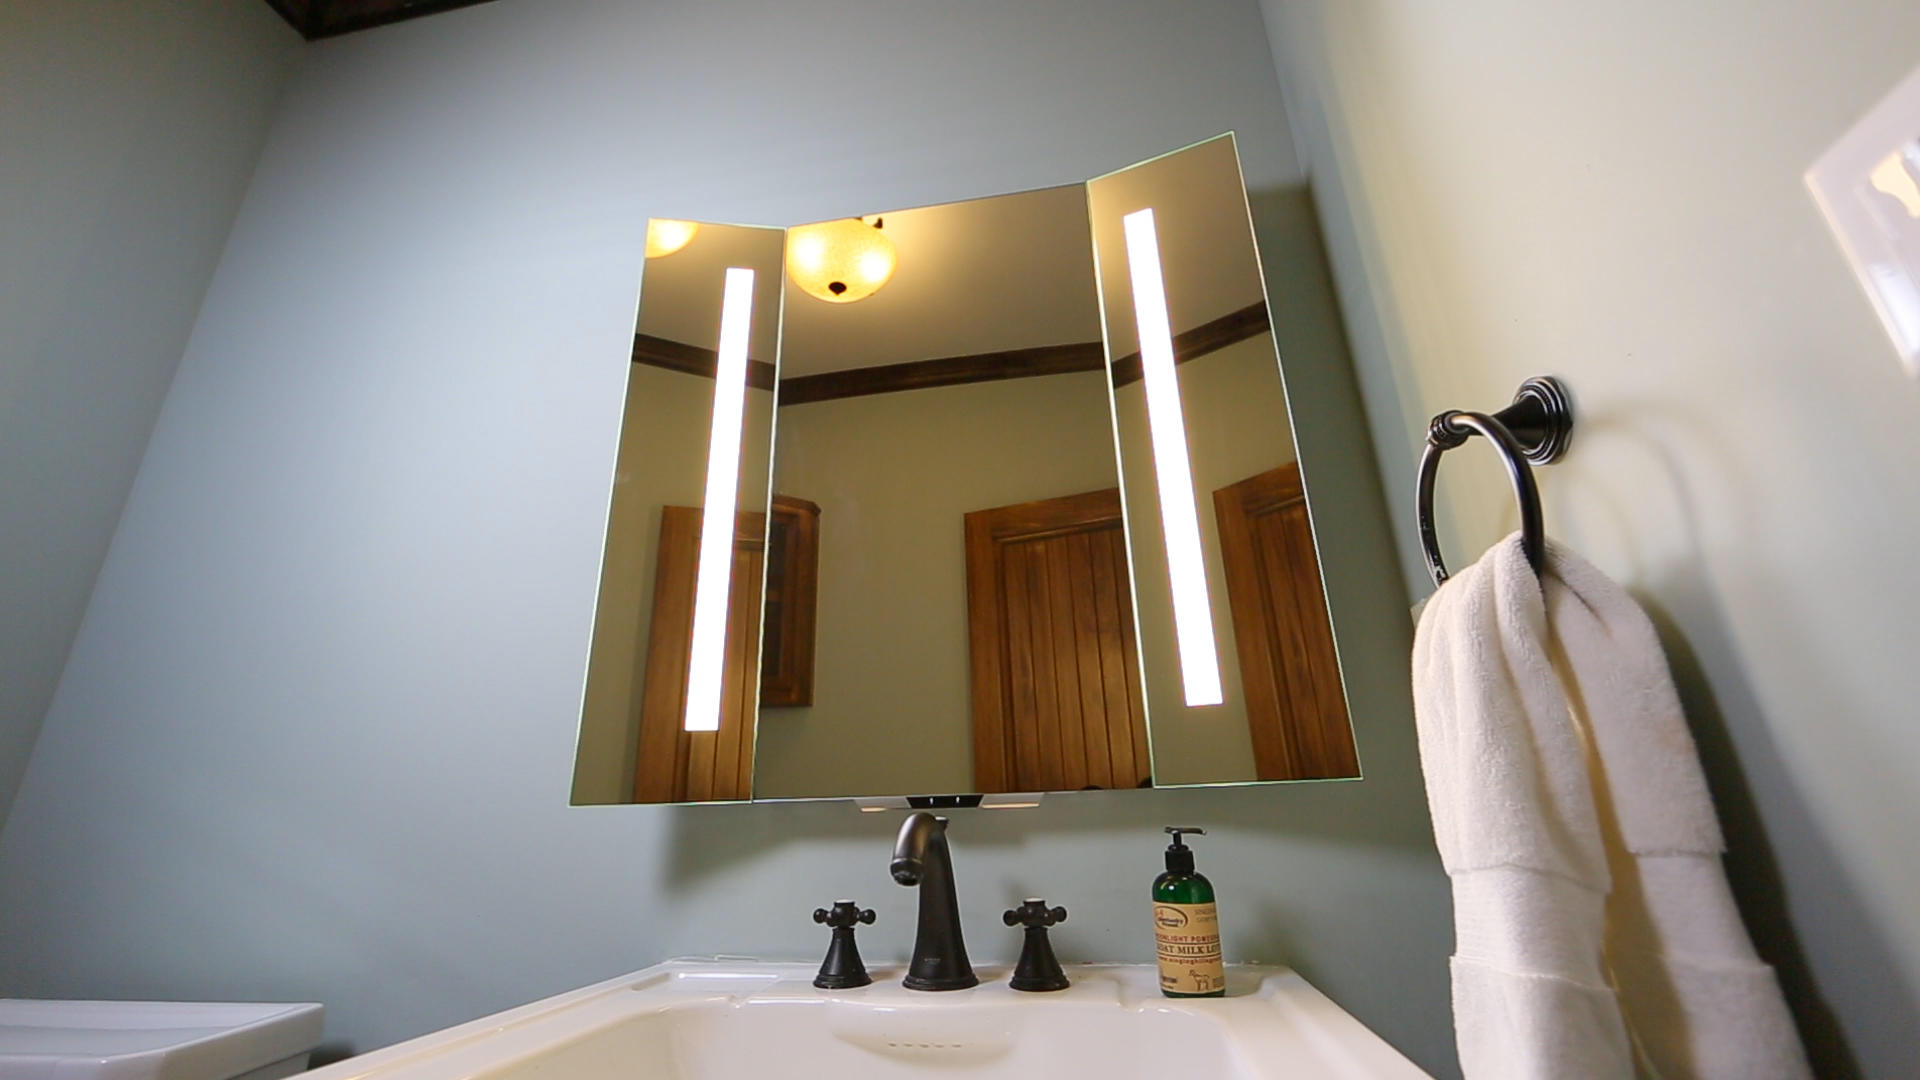 Alexa Steps Into The Bathroom With This Smart Mirror Cnet